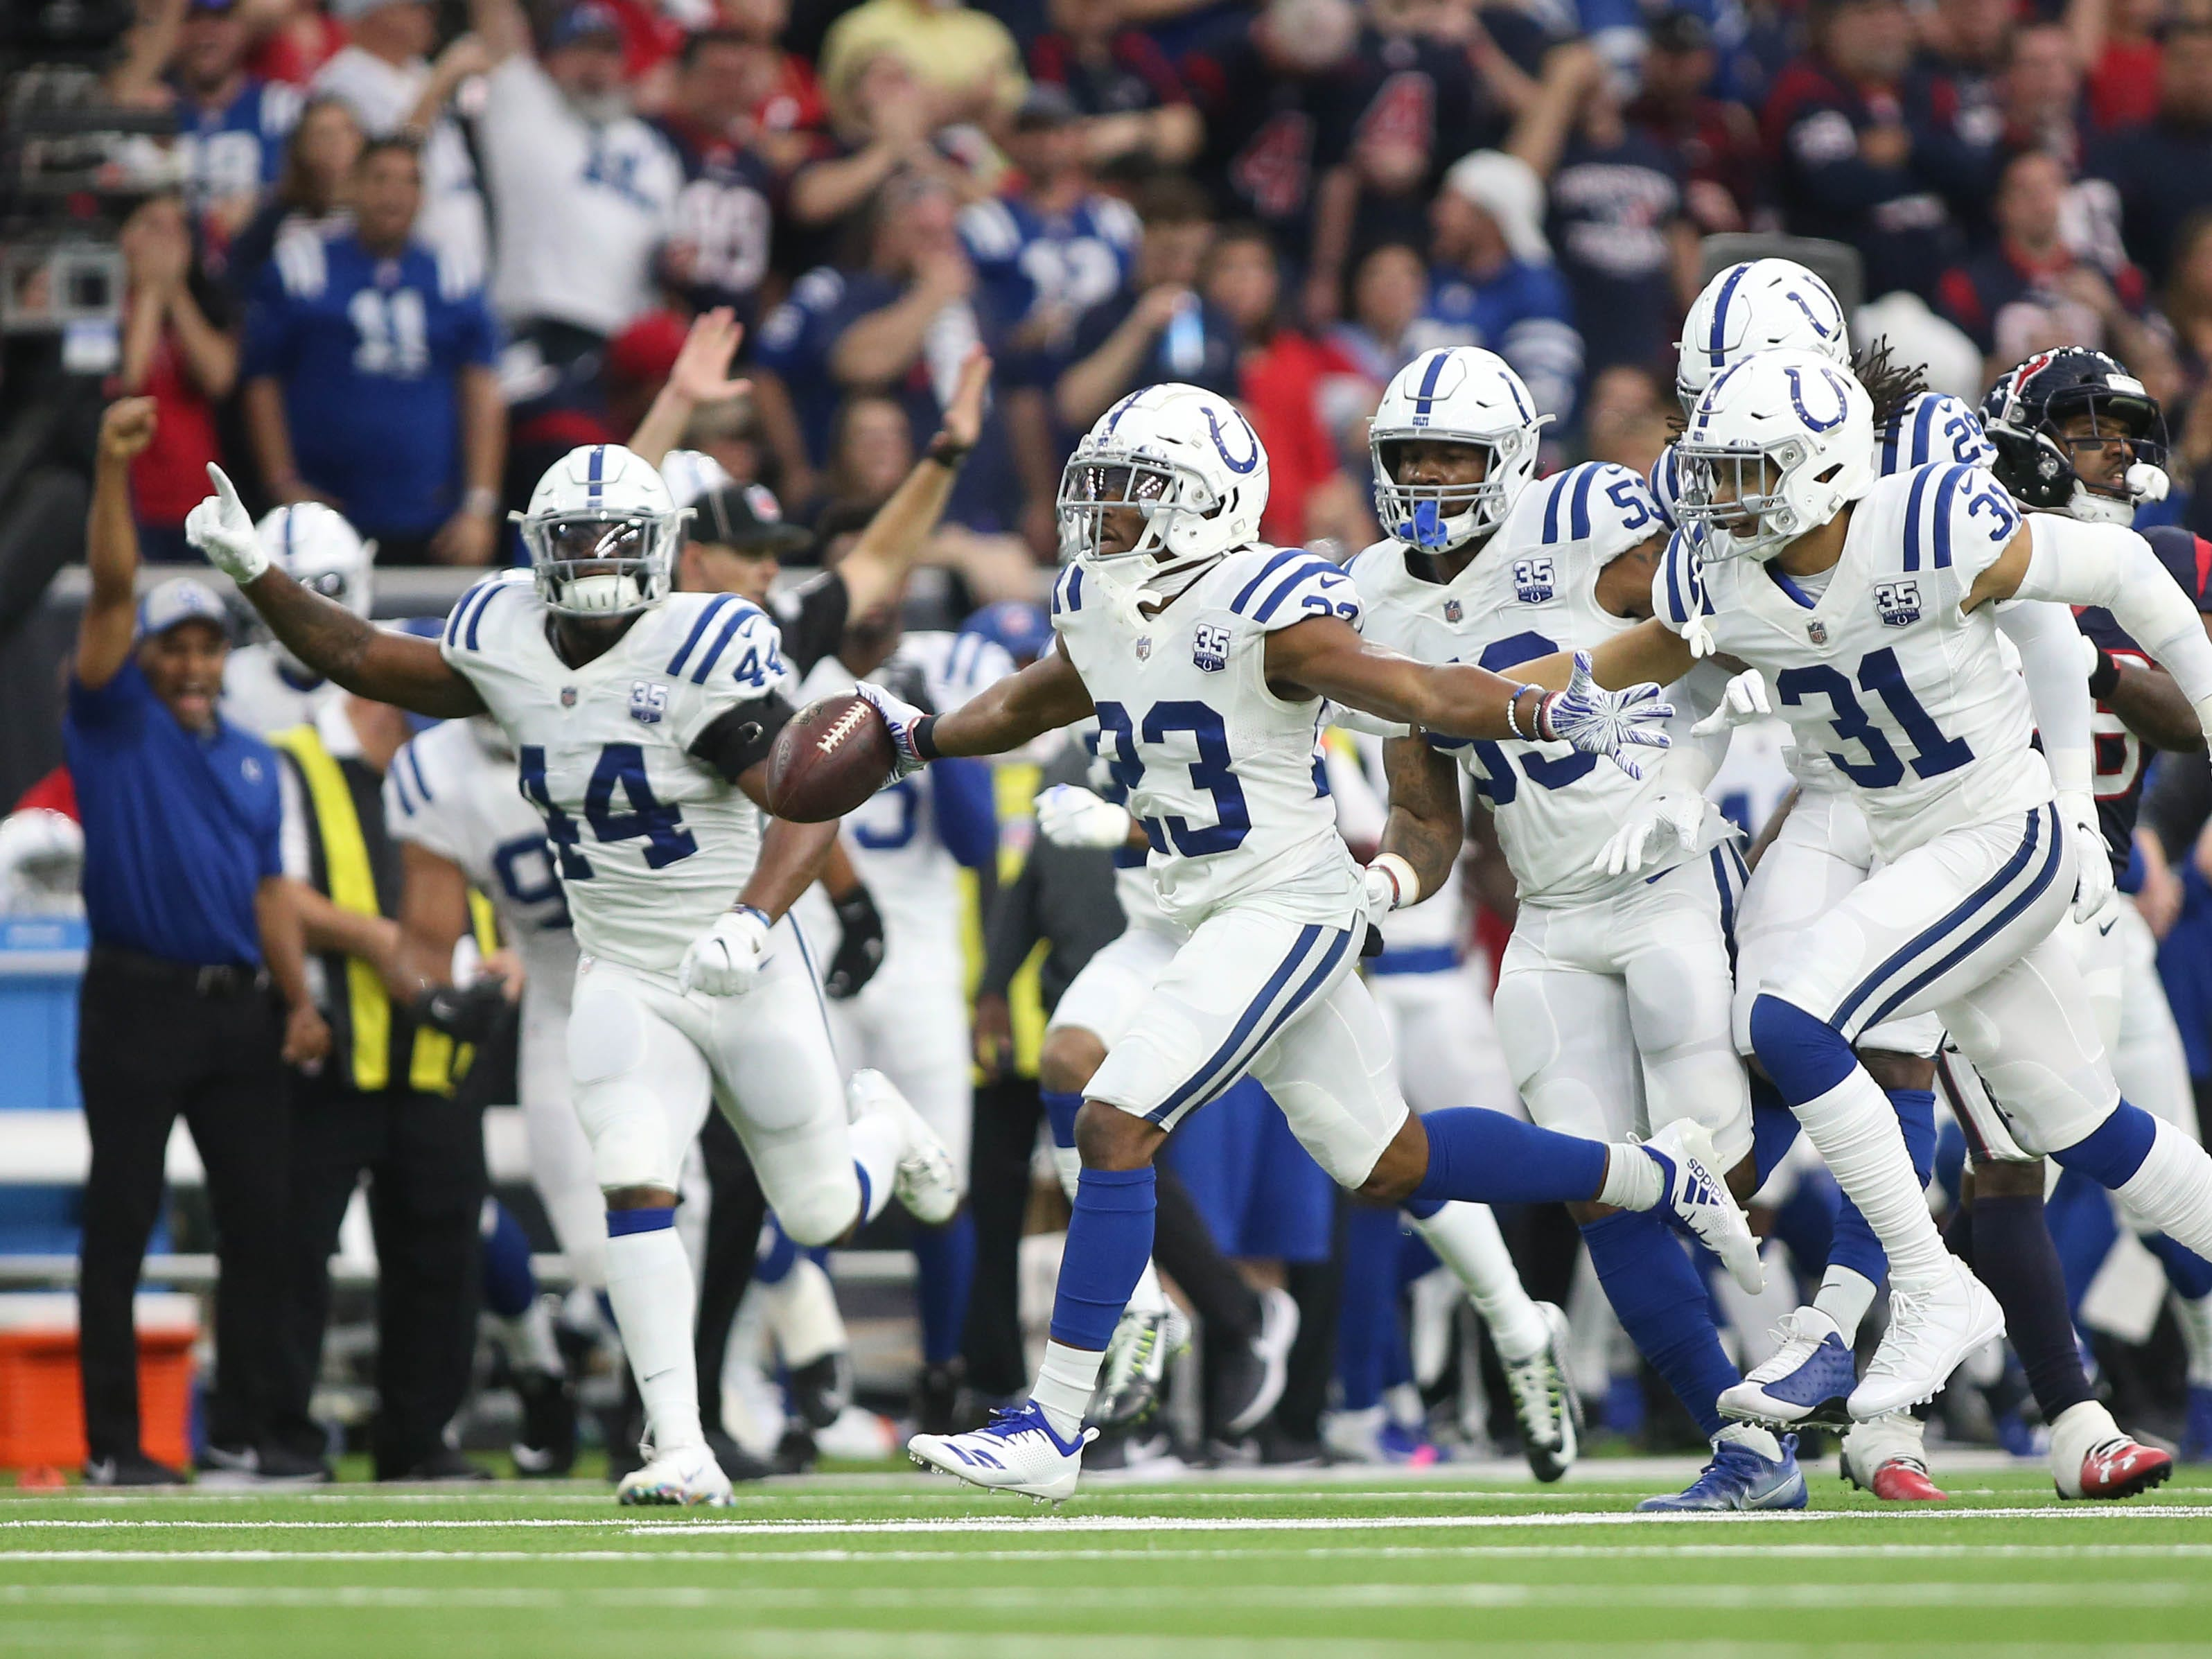 Indianapolis Colts cornerback Kenny Moore (23) reacts after an interception against the Houston Texans in the first half in a AFC Wild Card playoff football game at NRG Stadium.